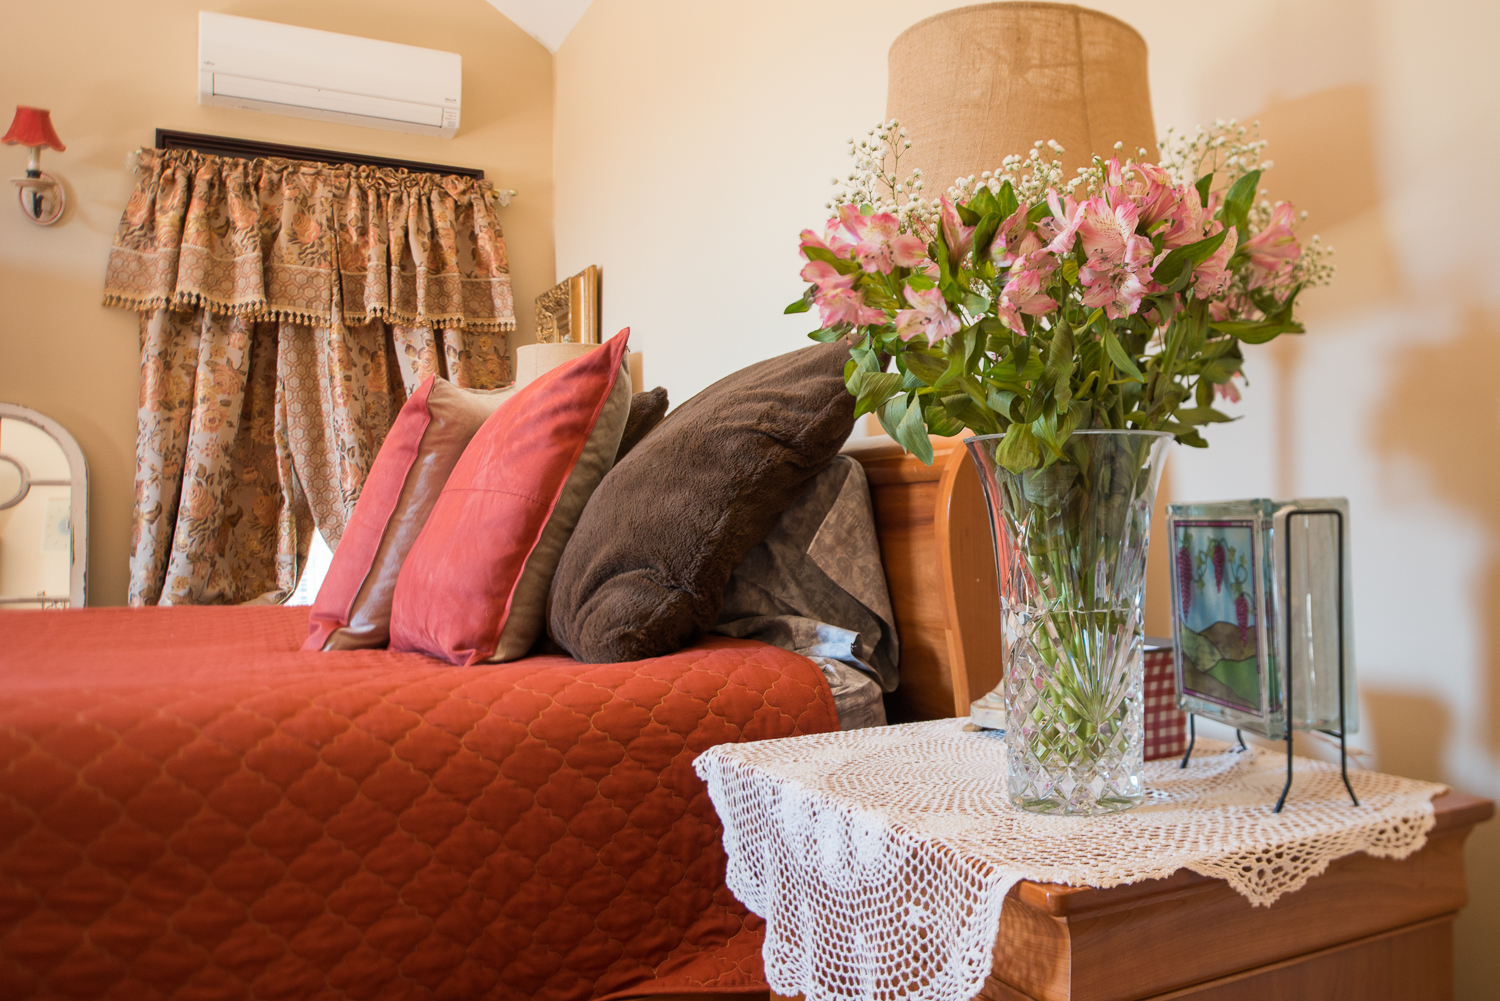 pillows on a bed with flowers on table